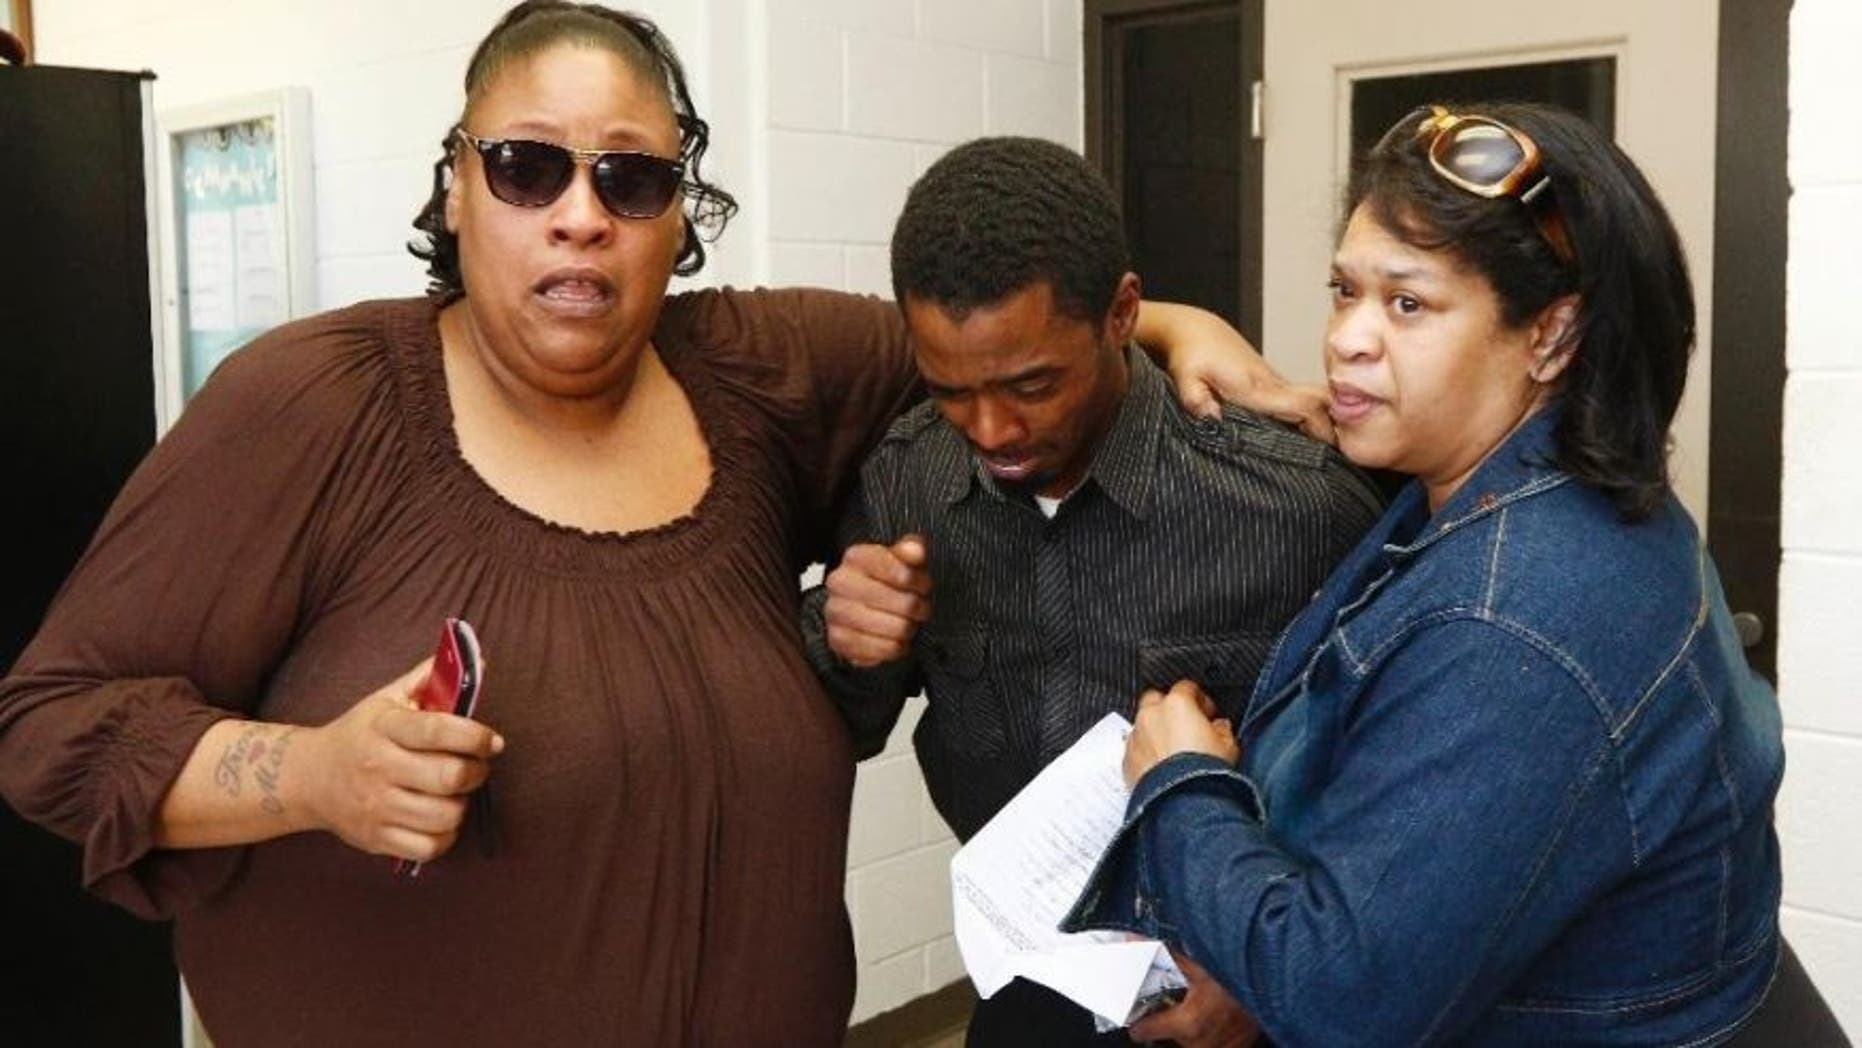 May 24, 2016: An emotional Joshua Blunt, center, is surrounded by family members after being released from the Grenada County Jail in Grenada, Miss